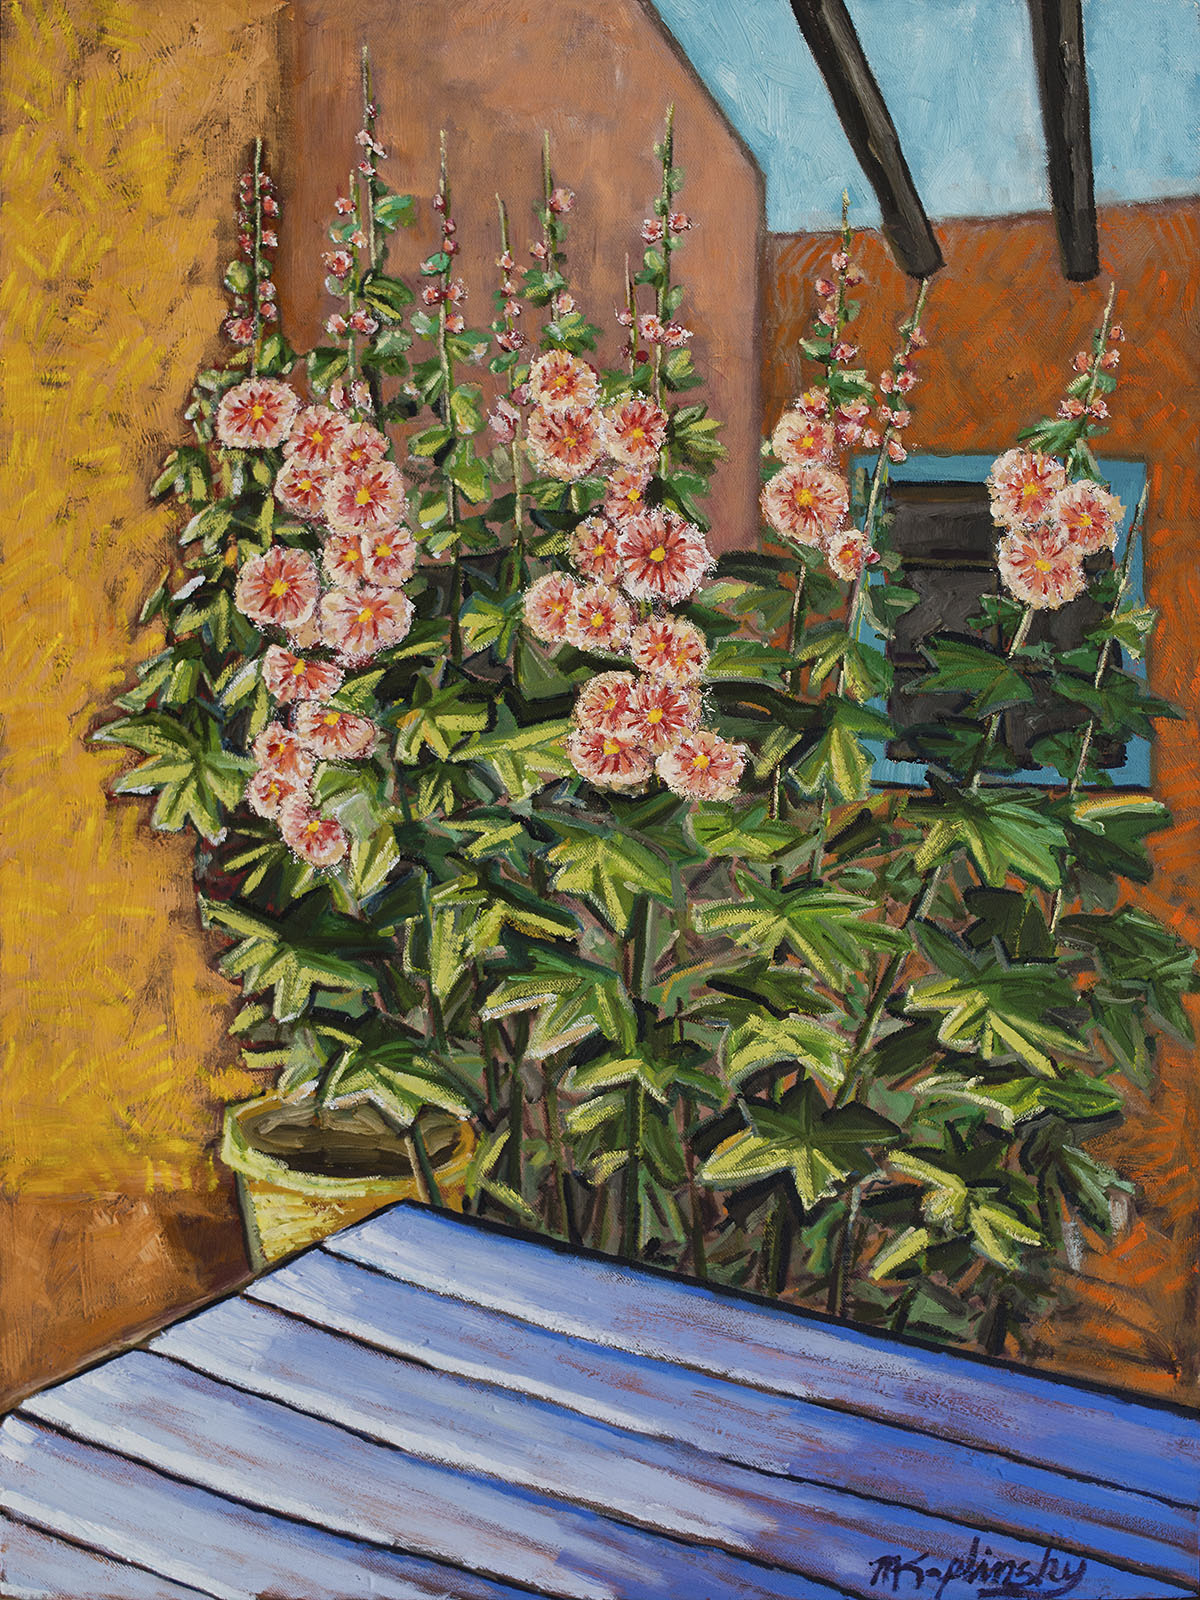 portfolio/Cafe Hollyhocks in New Mexico - 36x48 oil on masonite by Matt Kaplinsky.jpg